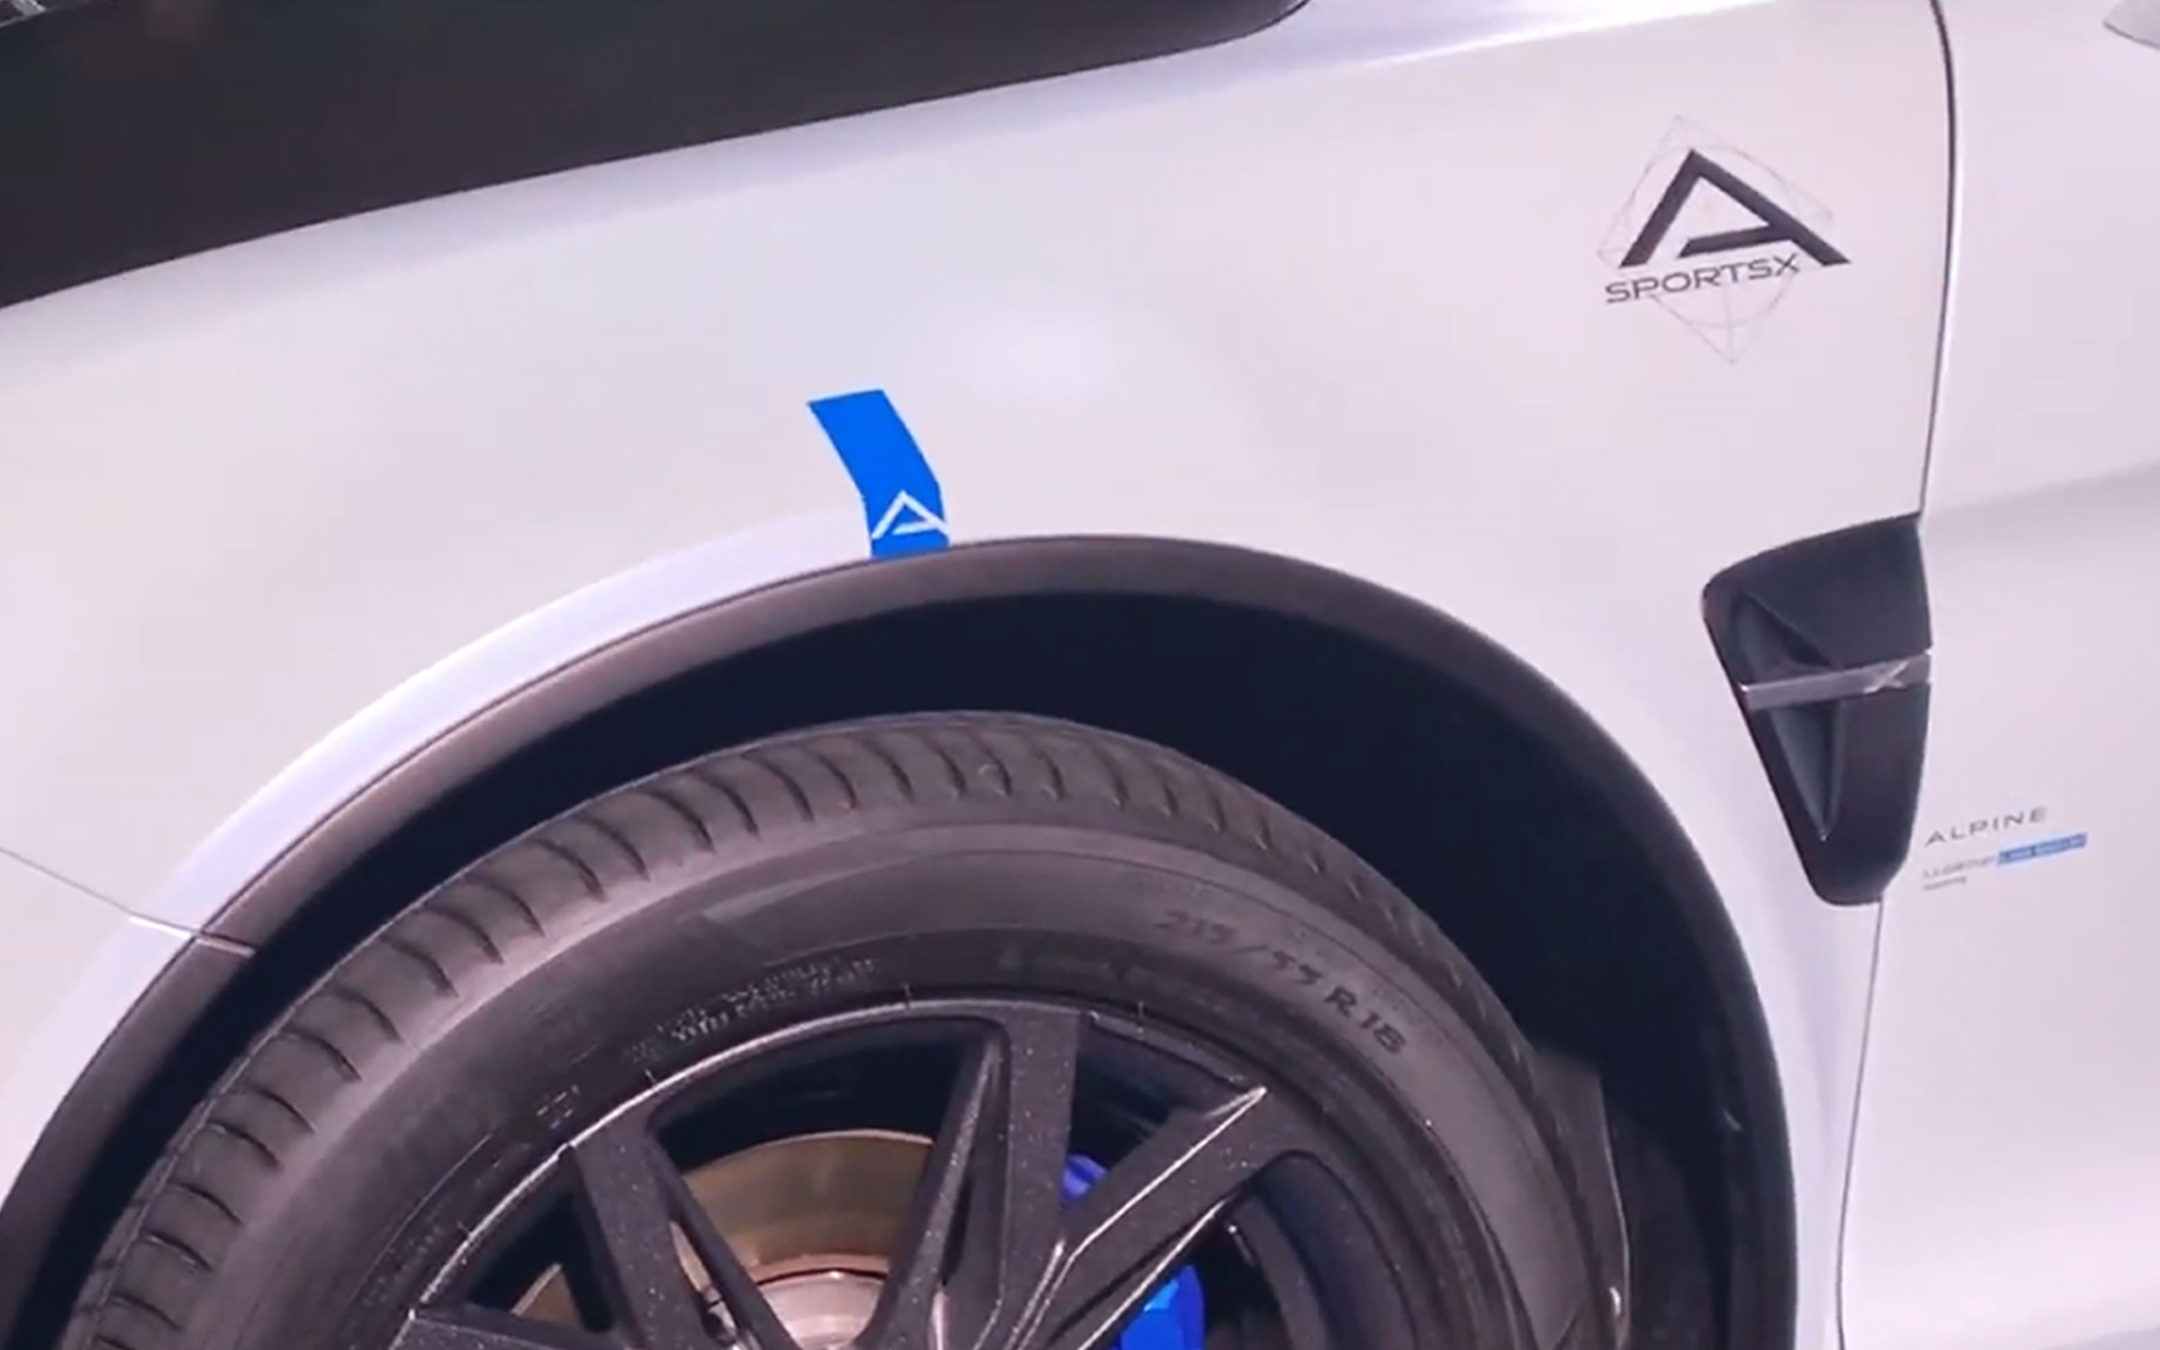 Alpine A110 Sports X - 2020 - logo A SPORTSX - preview - showcar - photo screen video - FAI2020